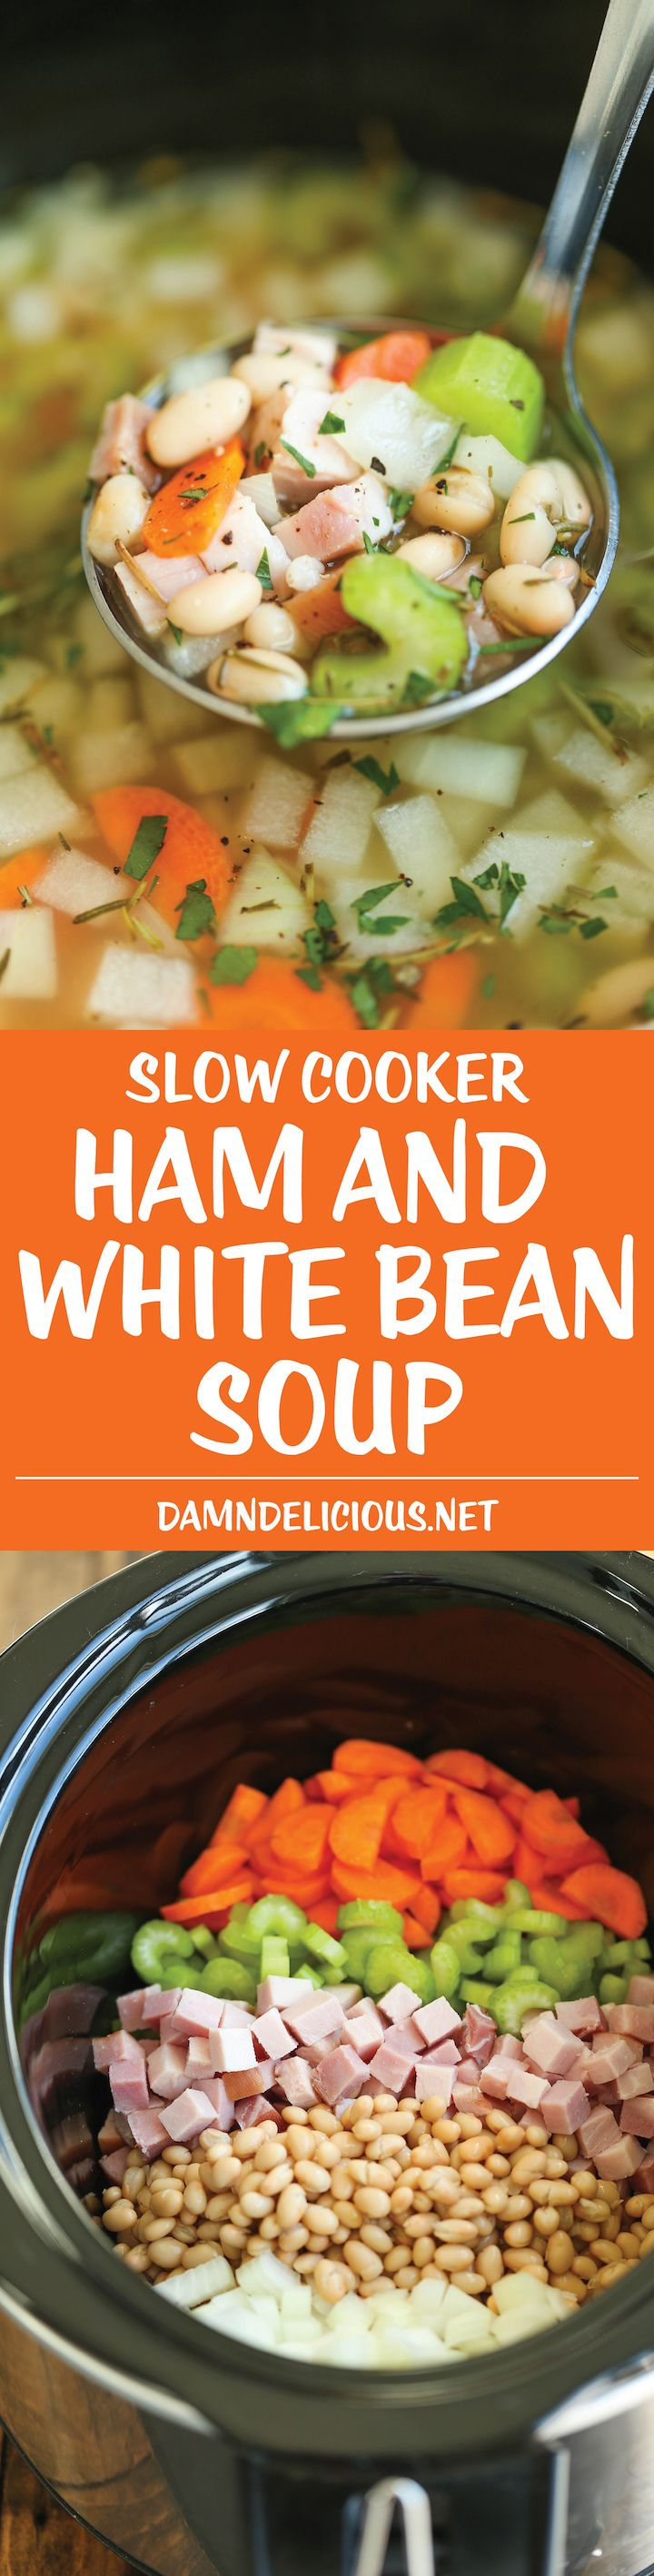 Slow Cooker Ham and White Bean Soup - Hearty, cozy and just so easy! The crockpot does all the work for you. Perfect to use up that leftover hambone!